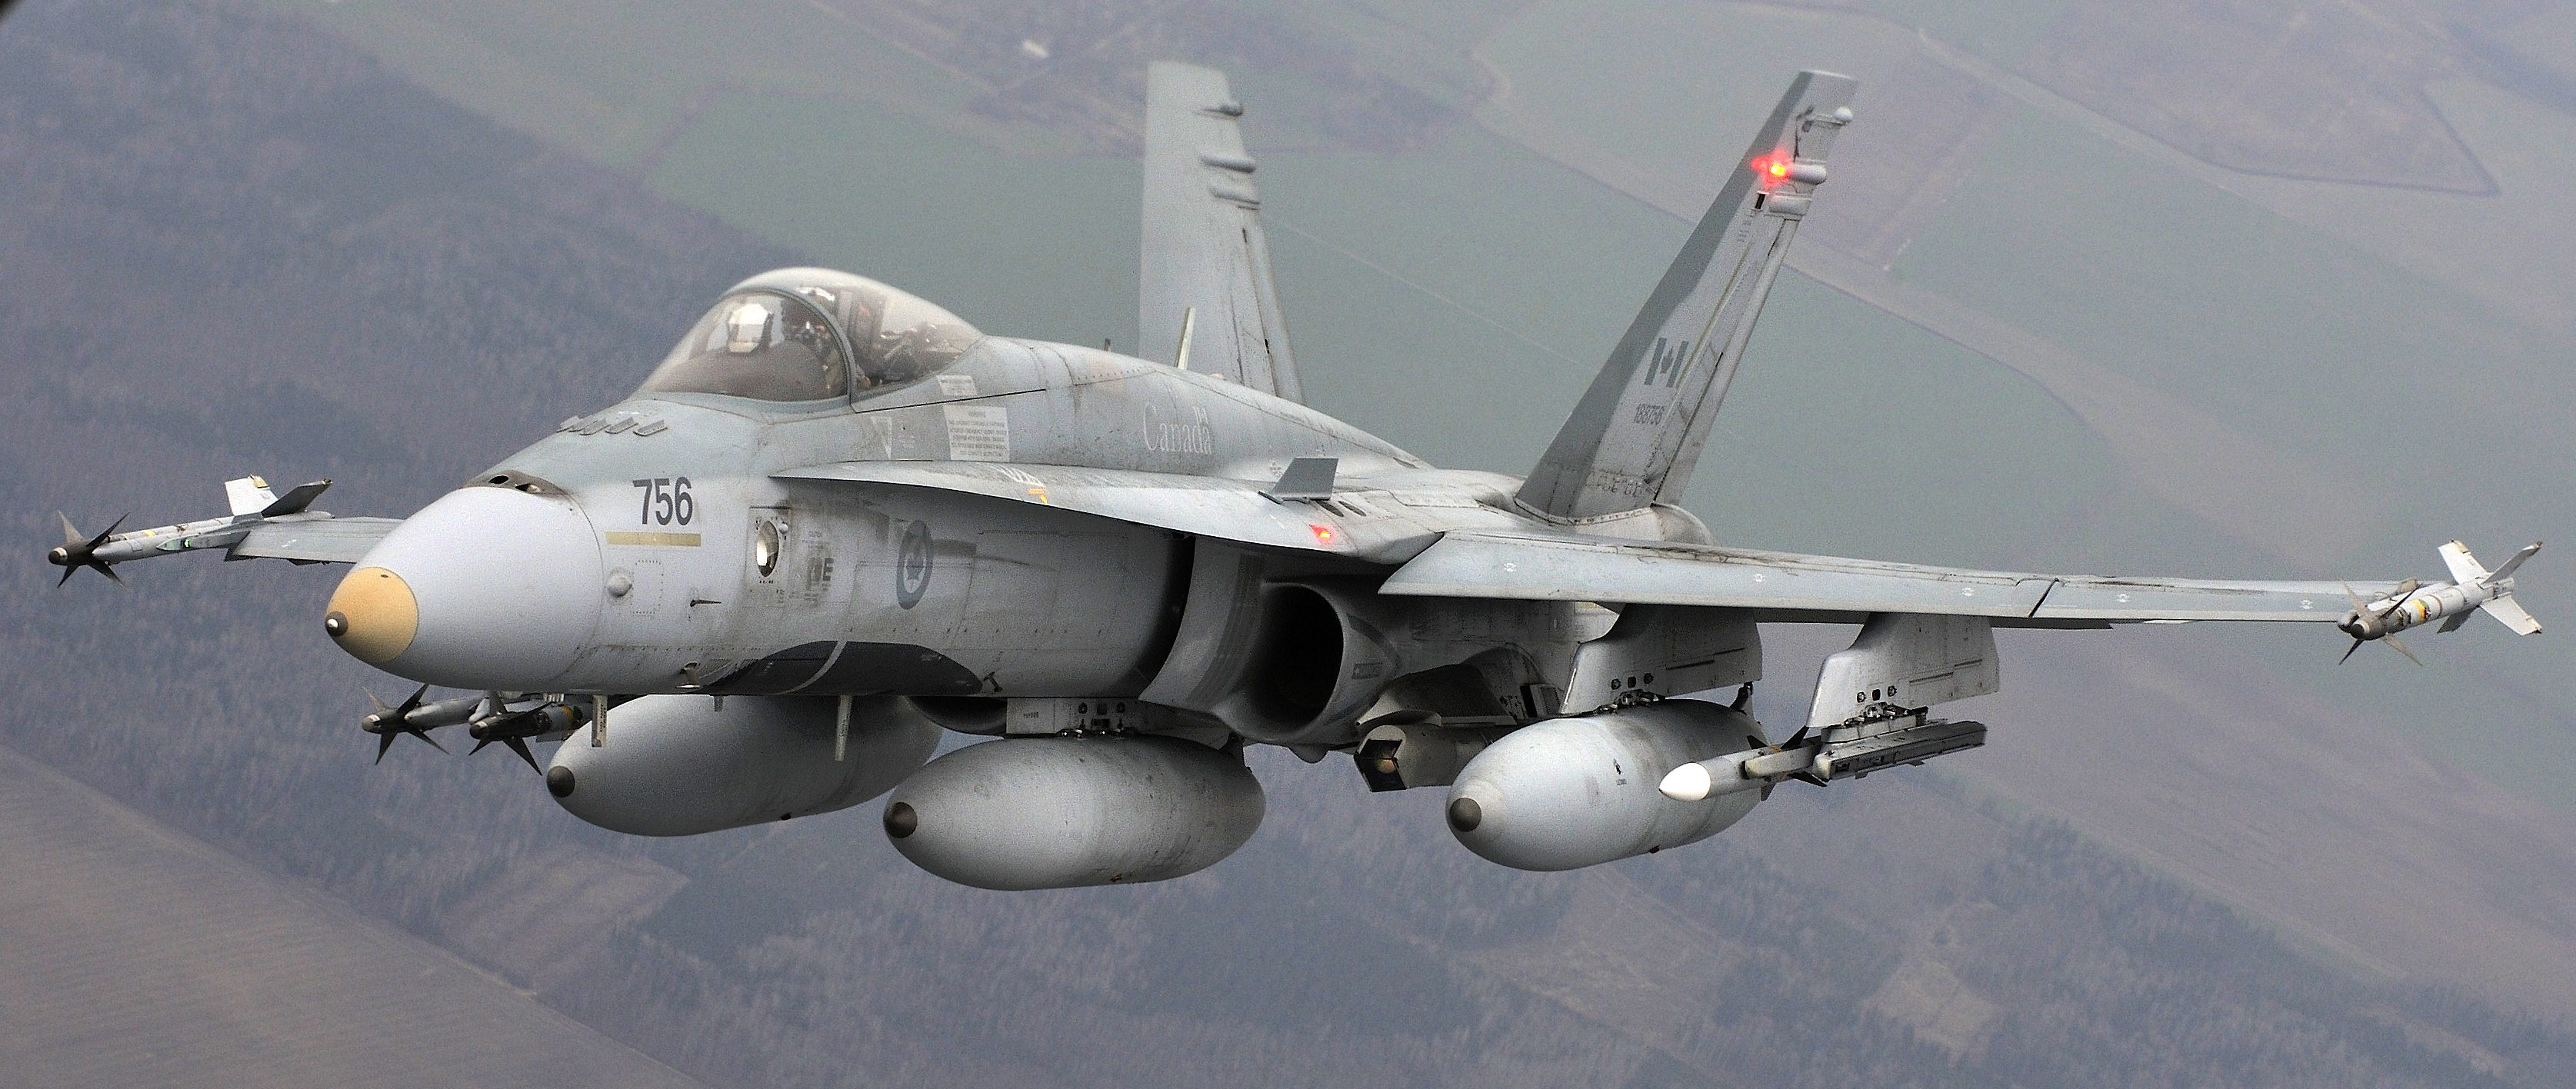 Canada Plans to Buy 18 Super Hornets, Start Fighter Competition in 2017